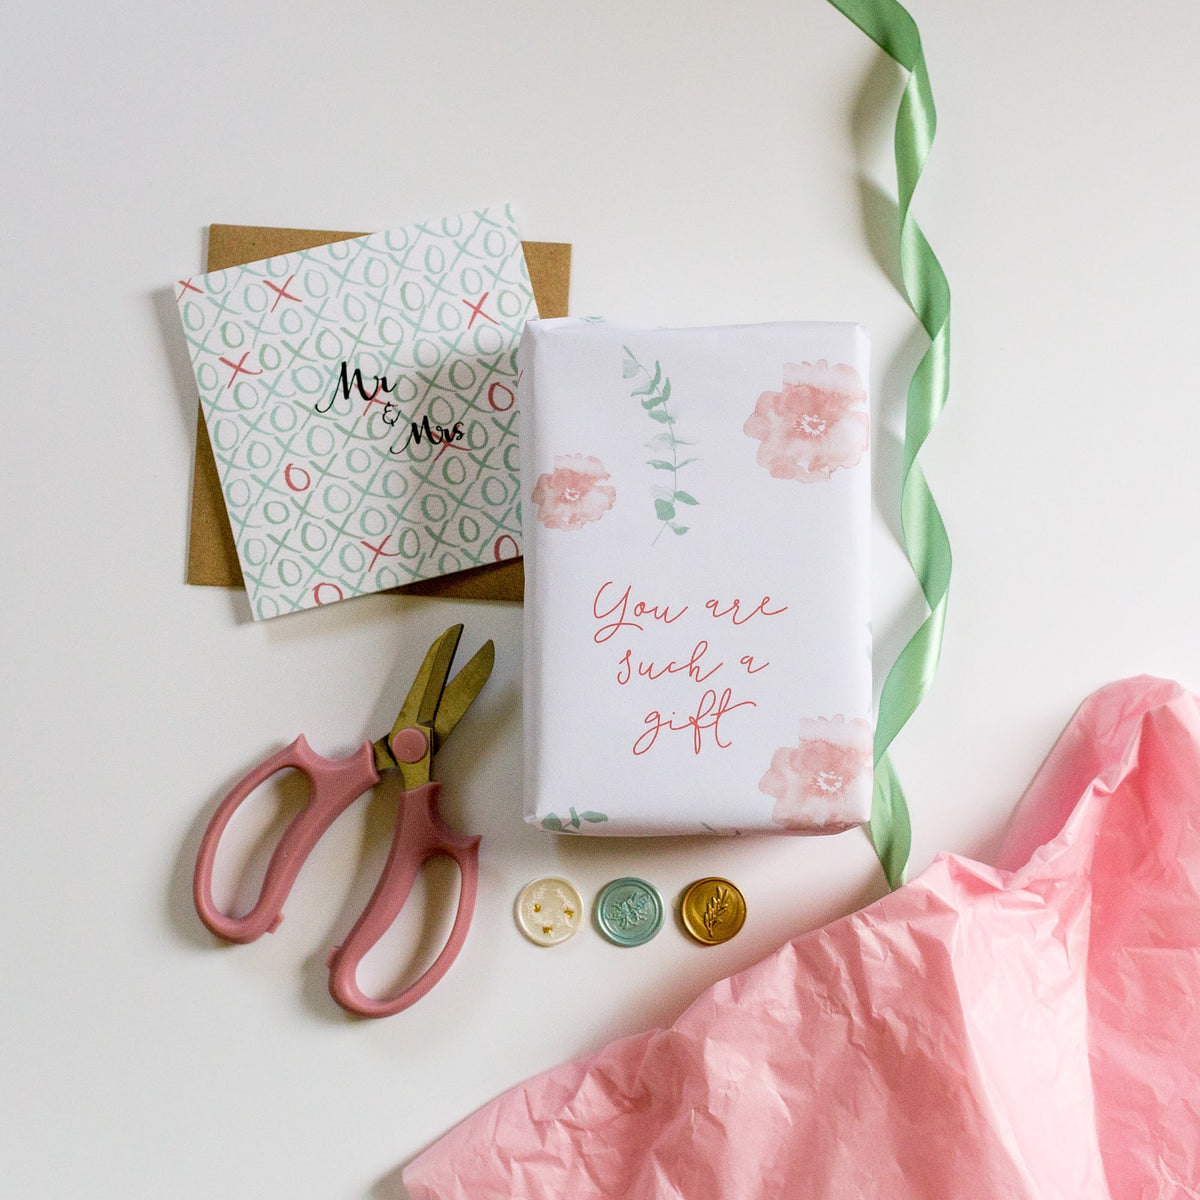 Image of a present wrapped in elegant and Hope designs gift wrap, a mr & Mrs wedding card and elements in mint green and light pink